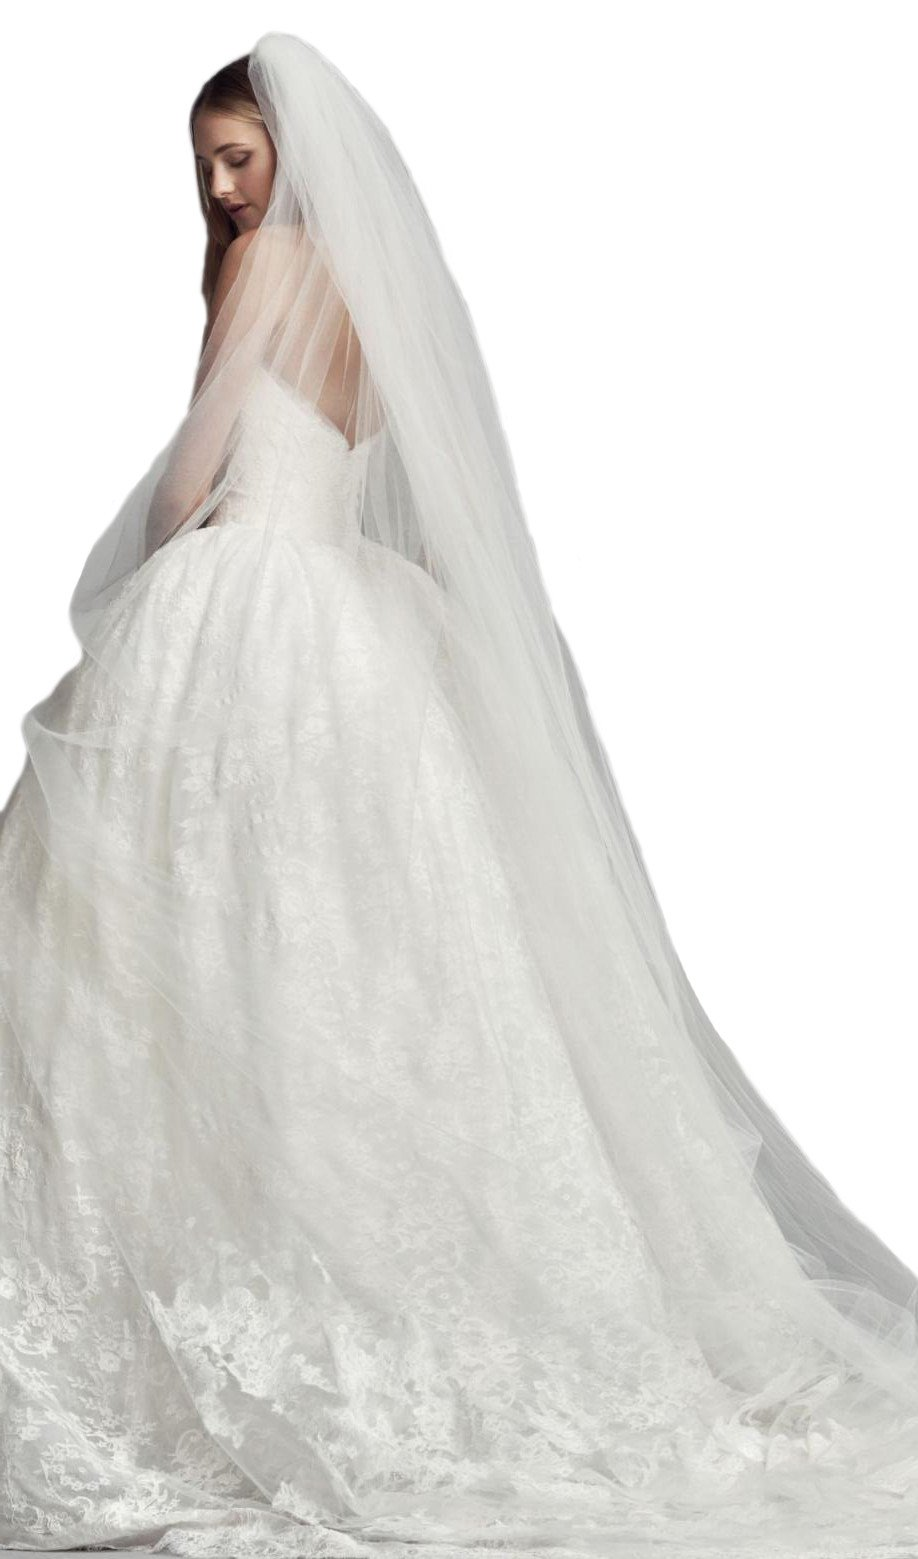 Passat Pale Ivory Single-Tier 3M Cathedral Wedding Veil with Lace Appliques DB113